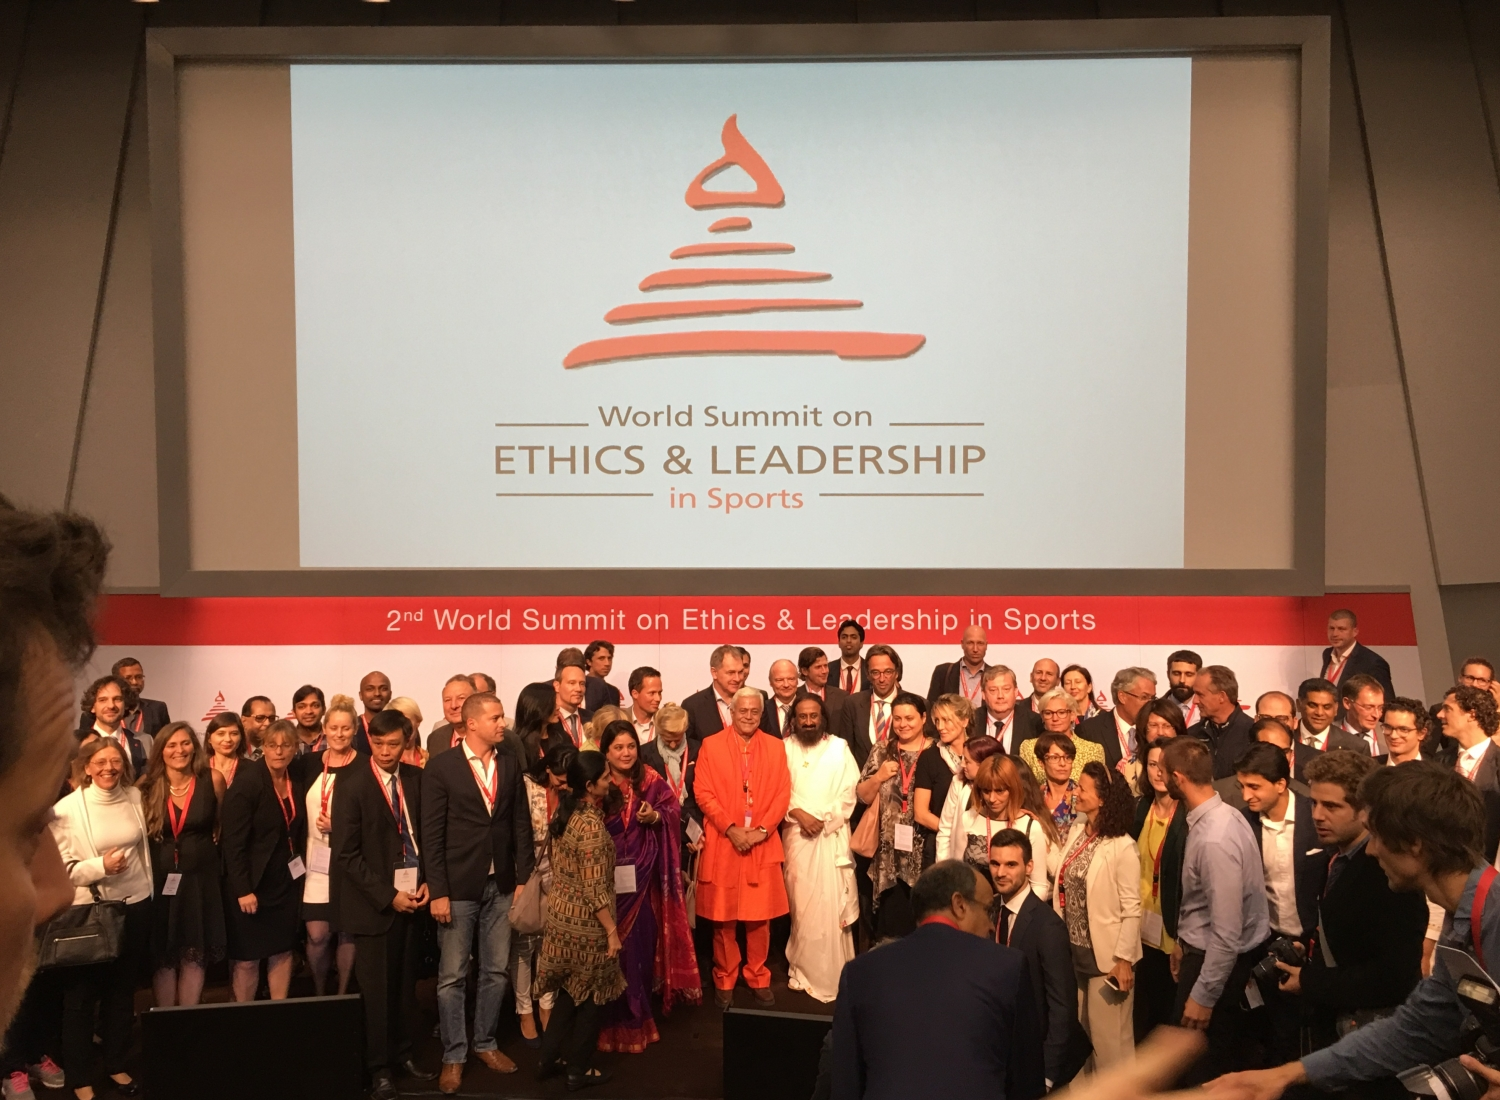 2nd World Summit on Ethics & Leadership in Sports - Zurich, Suisse - 2016, septembre